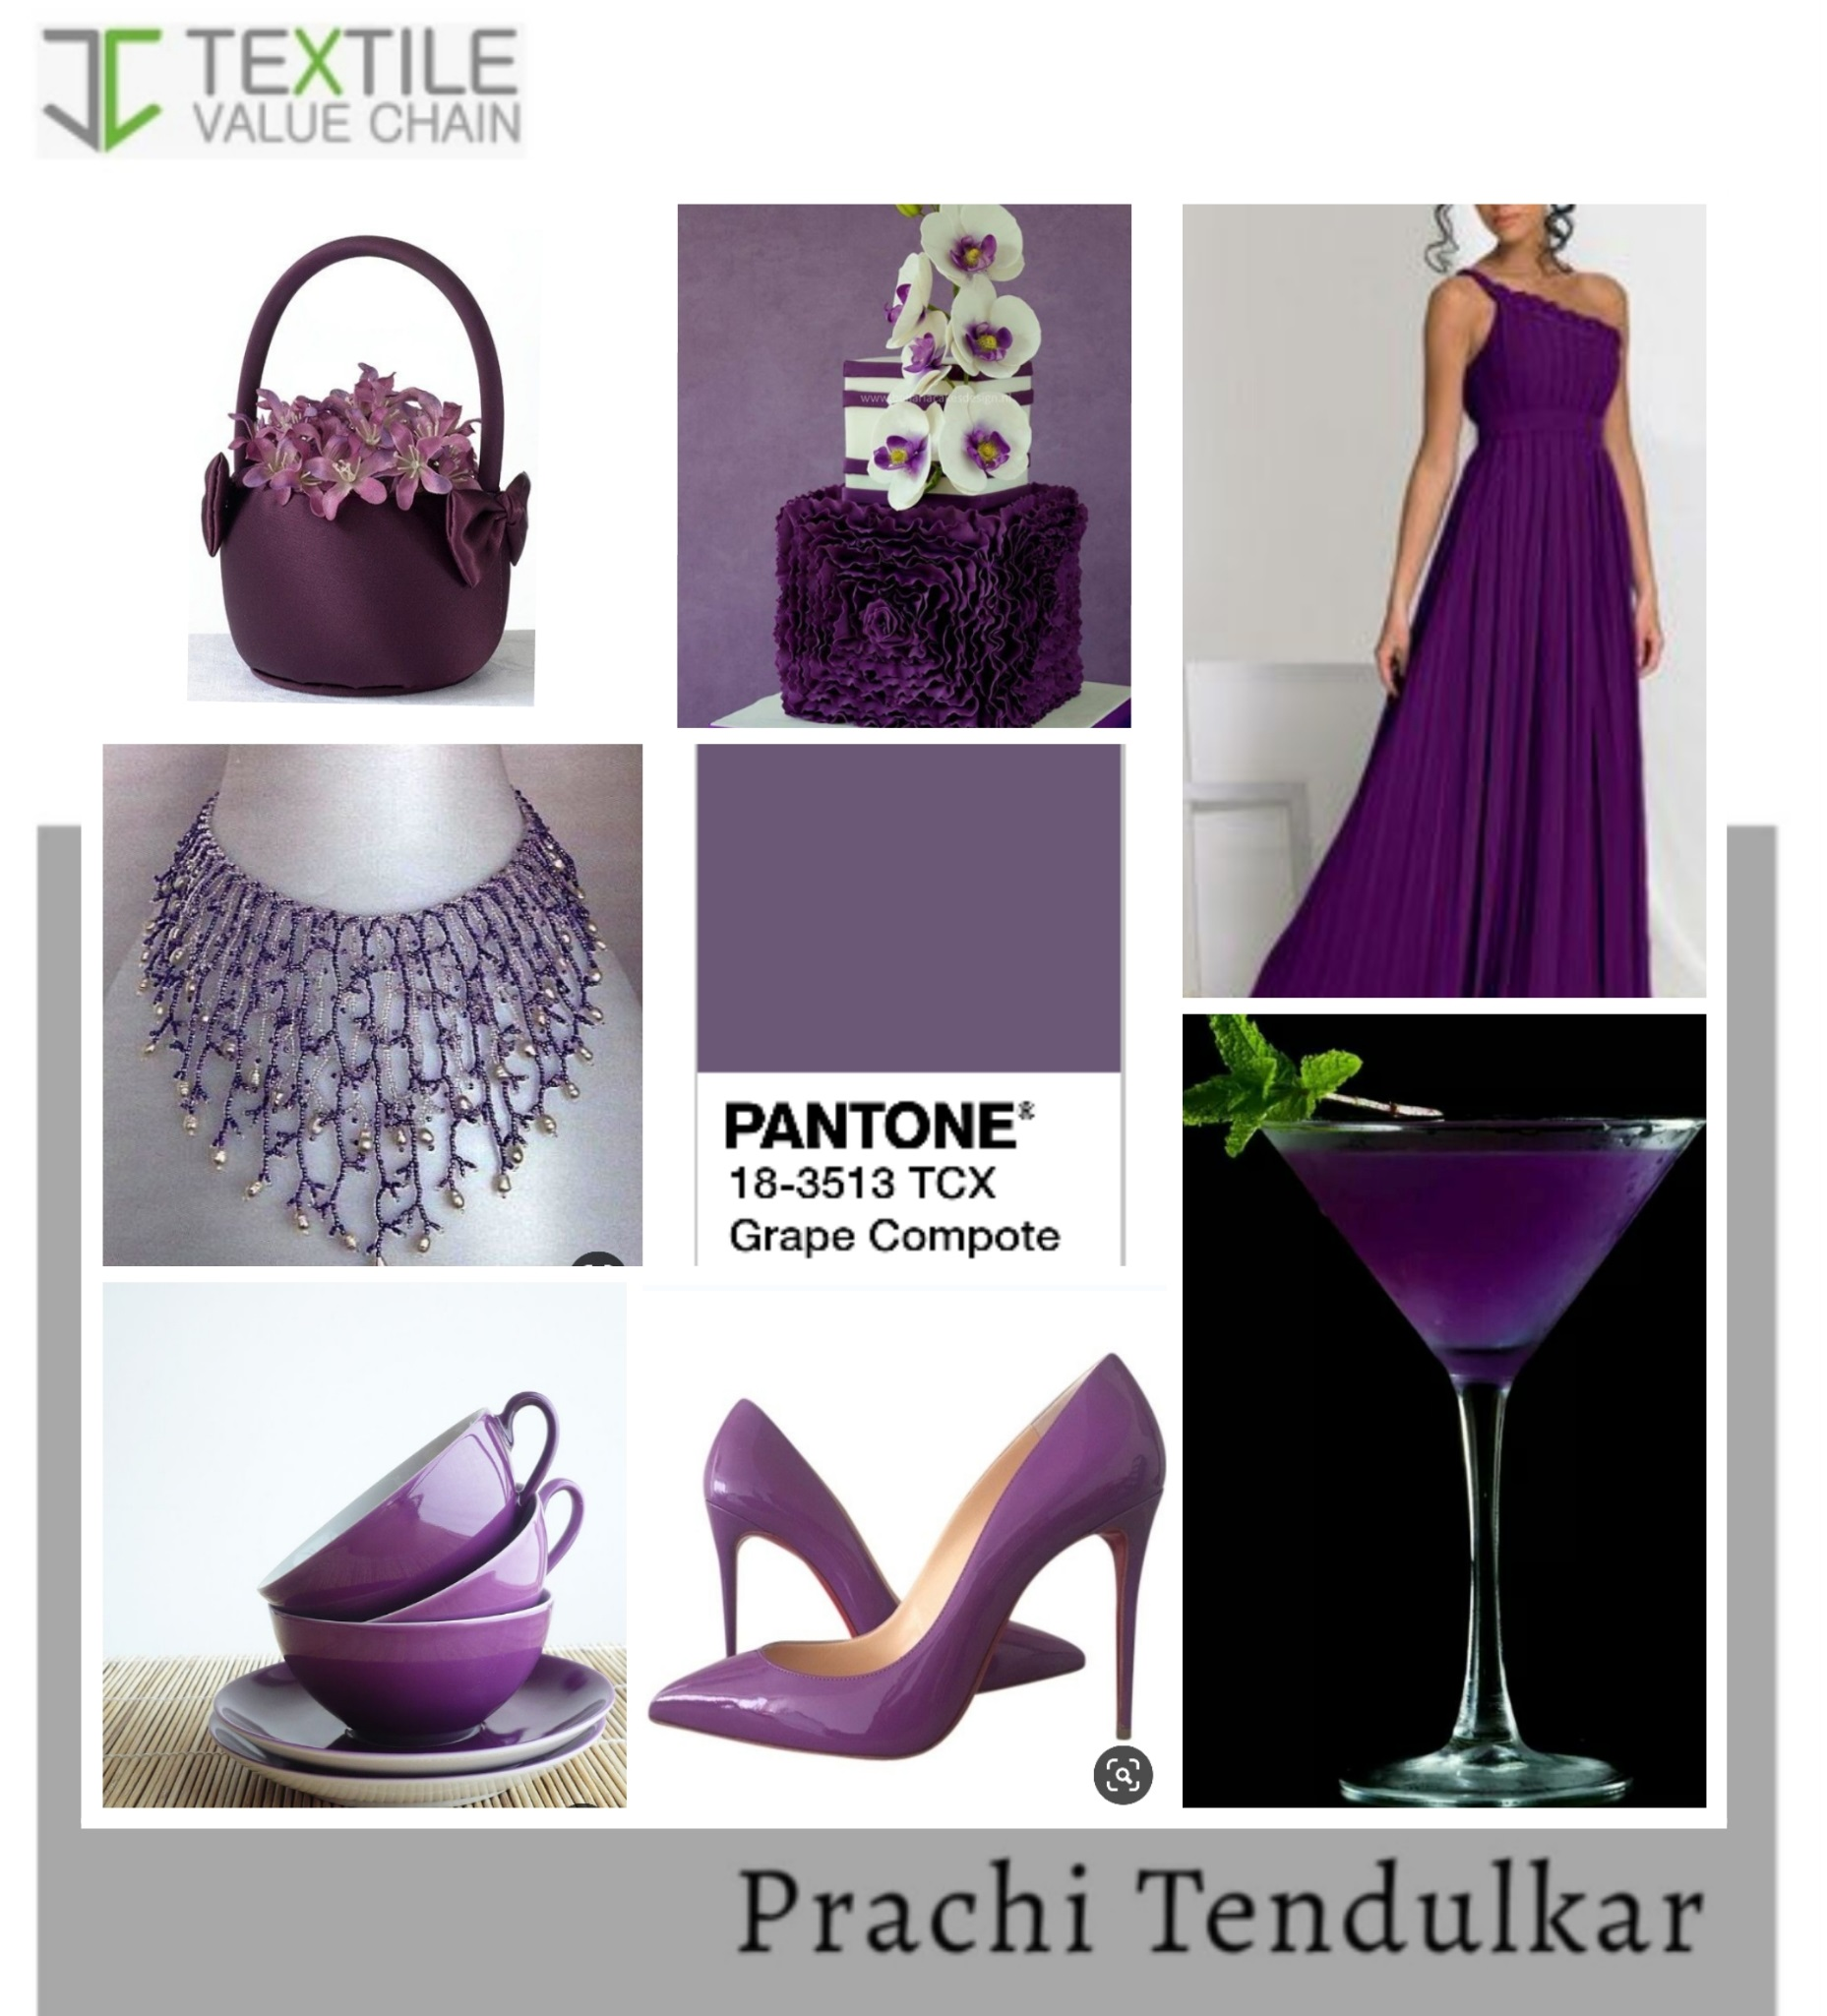 THE COLOR WITH CLASS (GRAPE COMPOTE)